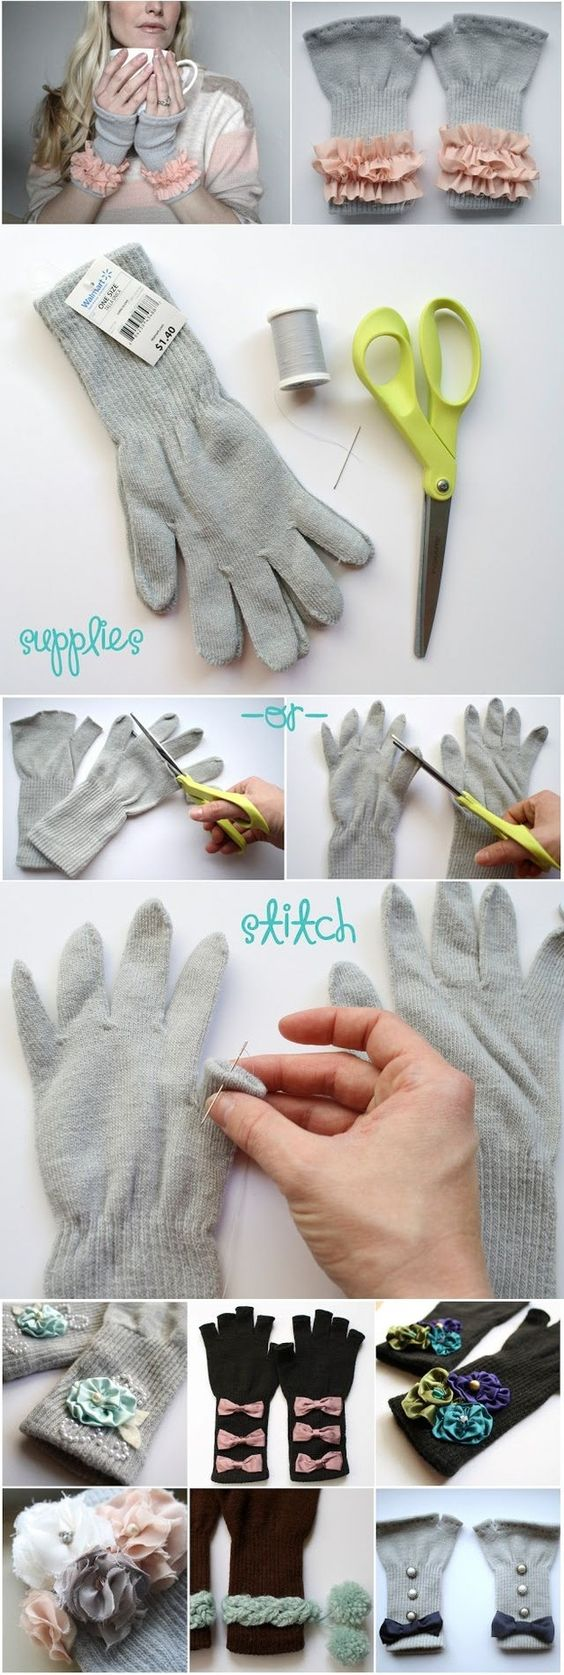 Fingerless gloves bunnings - A Great Idea Is To Throw Your Crafty Touches On Some Already Made Items For Example Take A Cheap Pair Of Gloves And Bling Them Out Make Them Fingerless